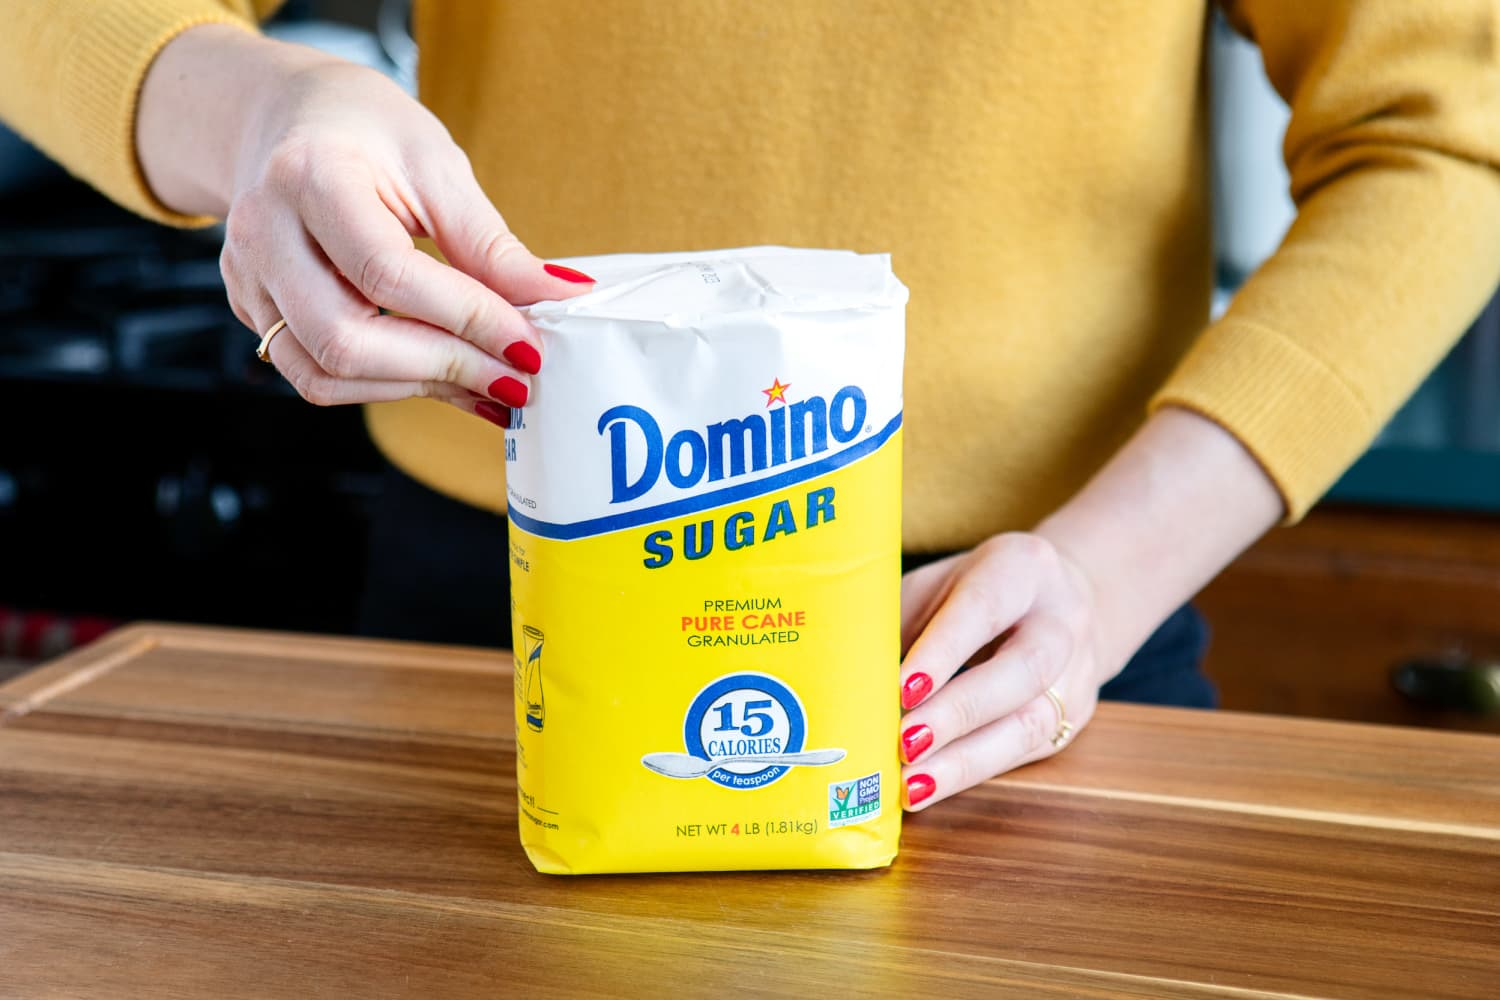 The First Thing You Should Do When You Open a New Bag of Sugar